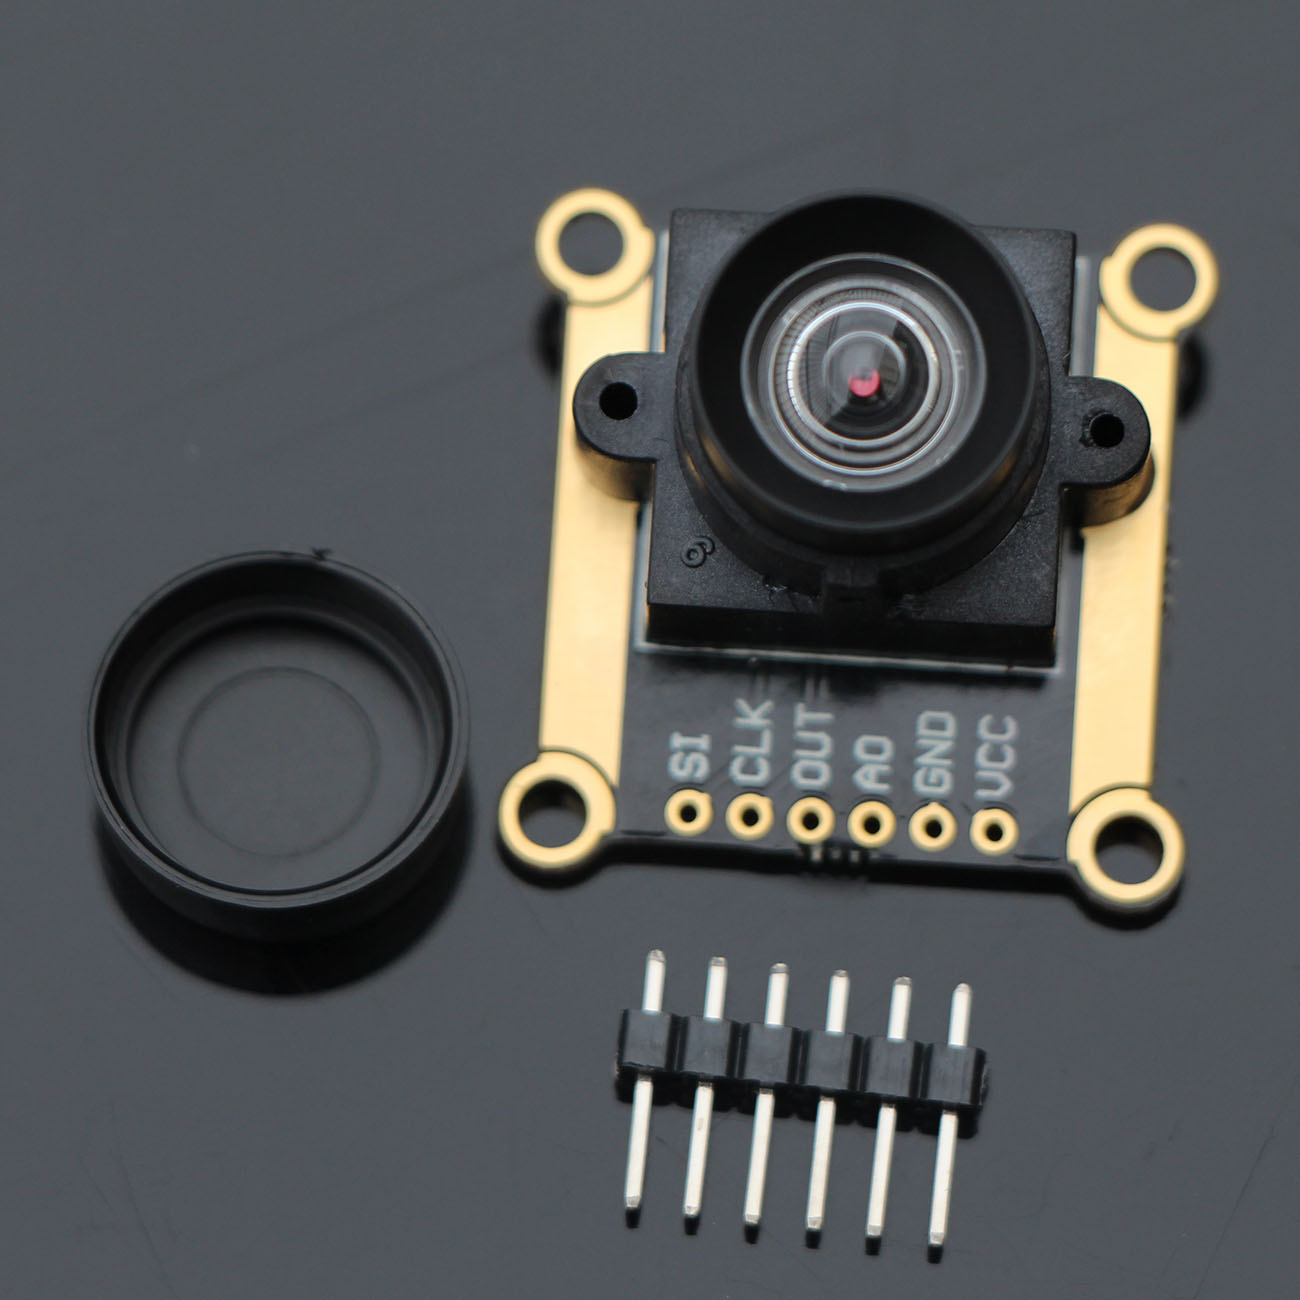 New 3V-5V TSL1401CL 128X1 Linear CCD Sensor Comes With Array With Hold Ultra Wide-Angle Lens Tracking Module